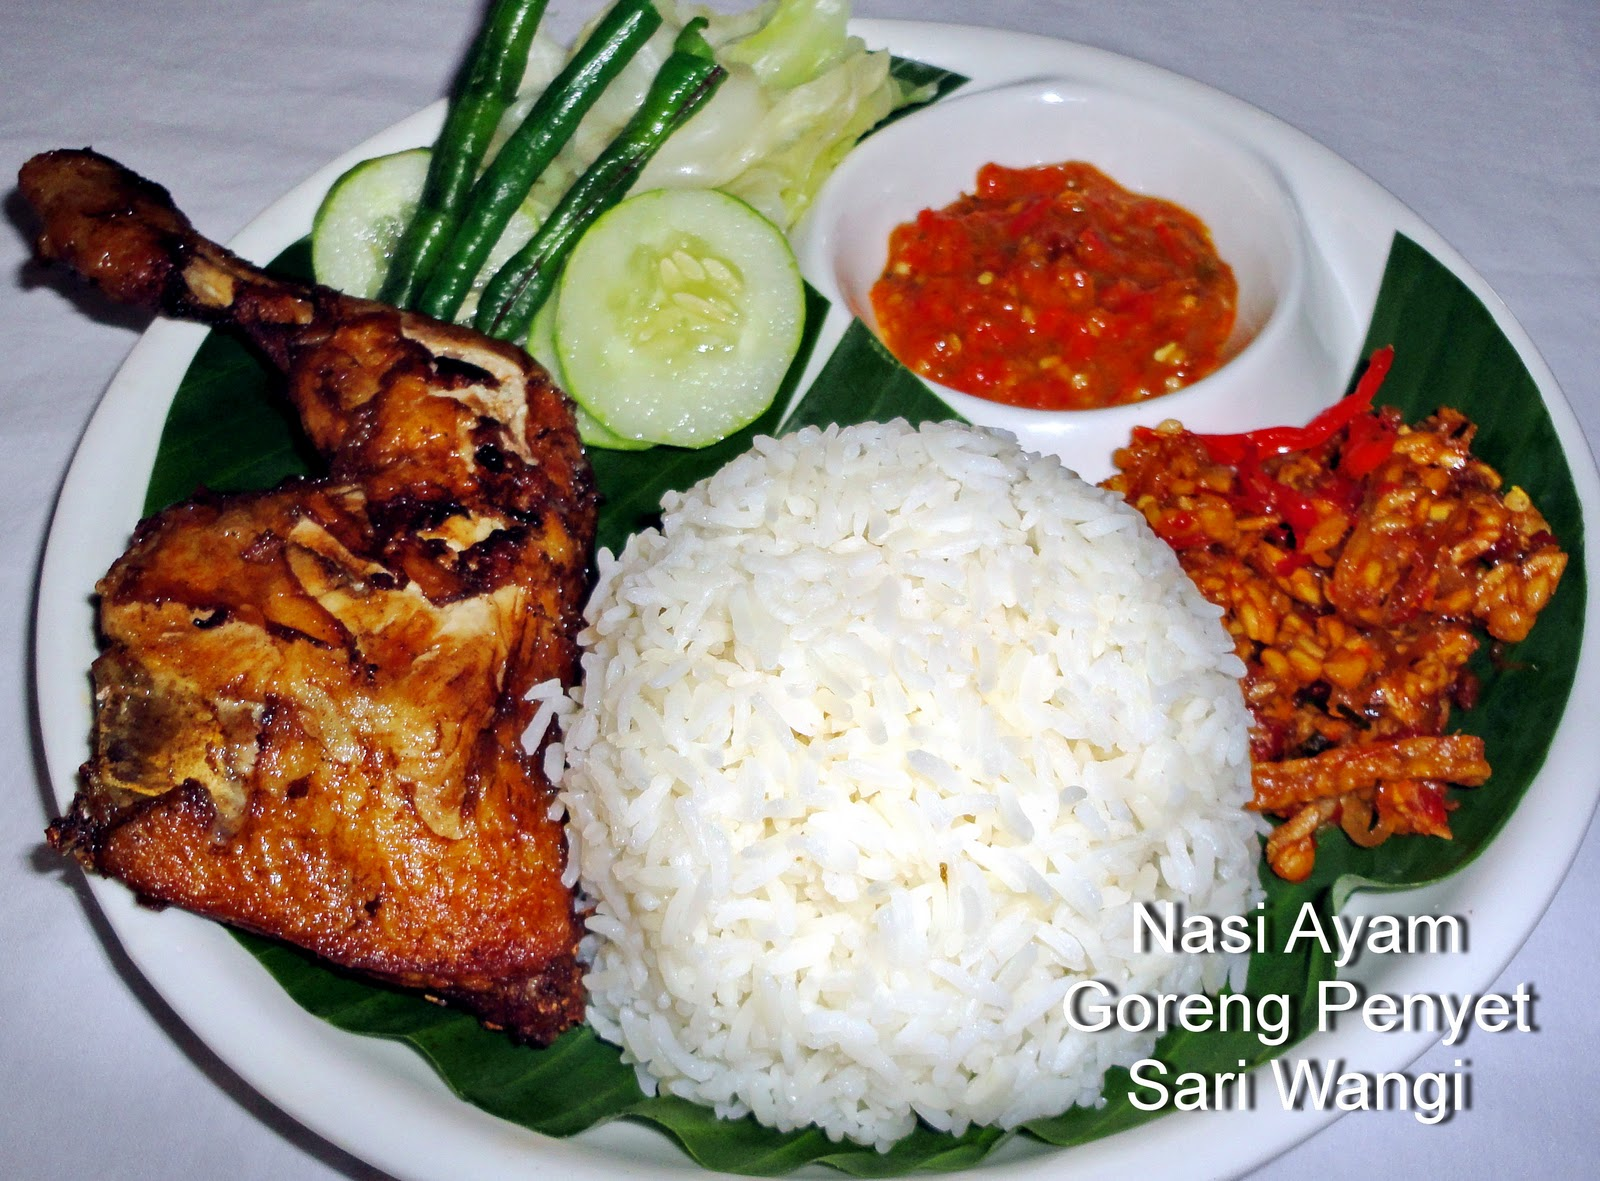 Pondok sari wangi indonesian restaurant all new food menu for Authentic indonesian cuisine